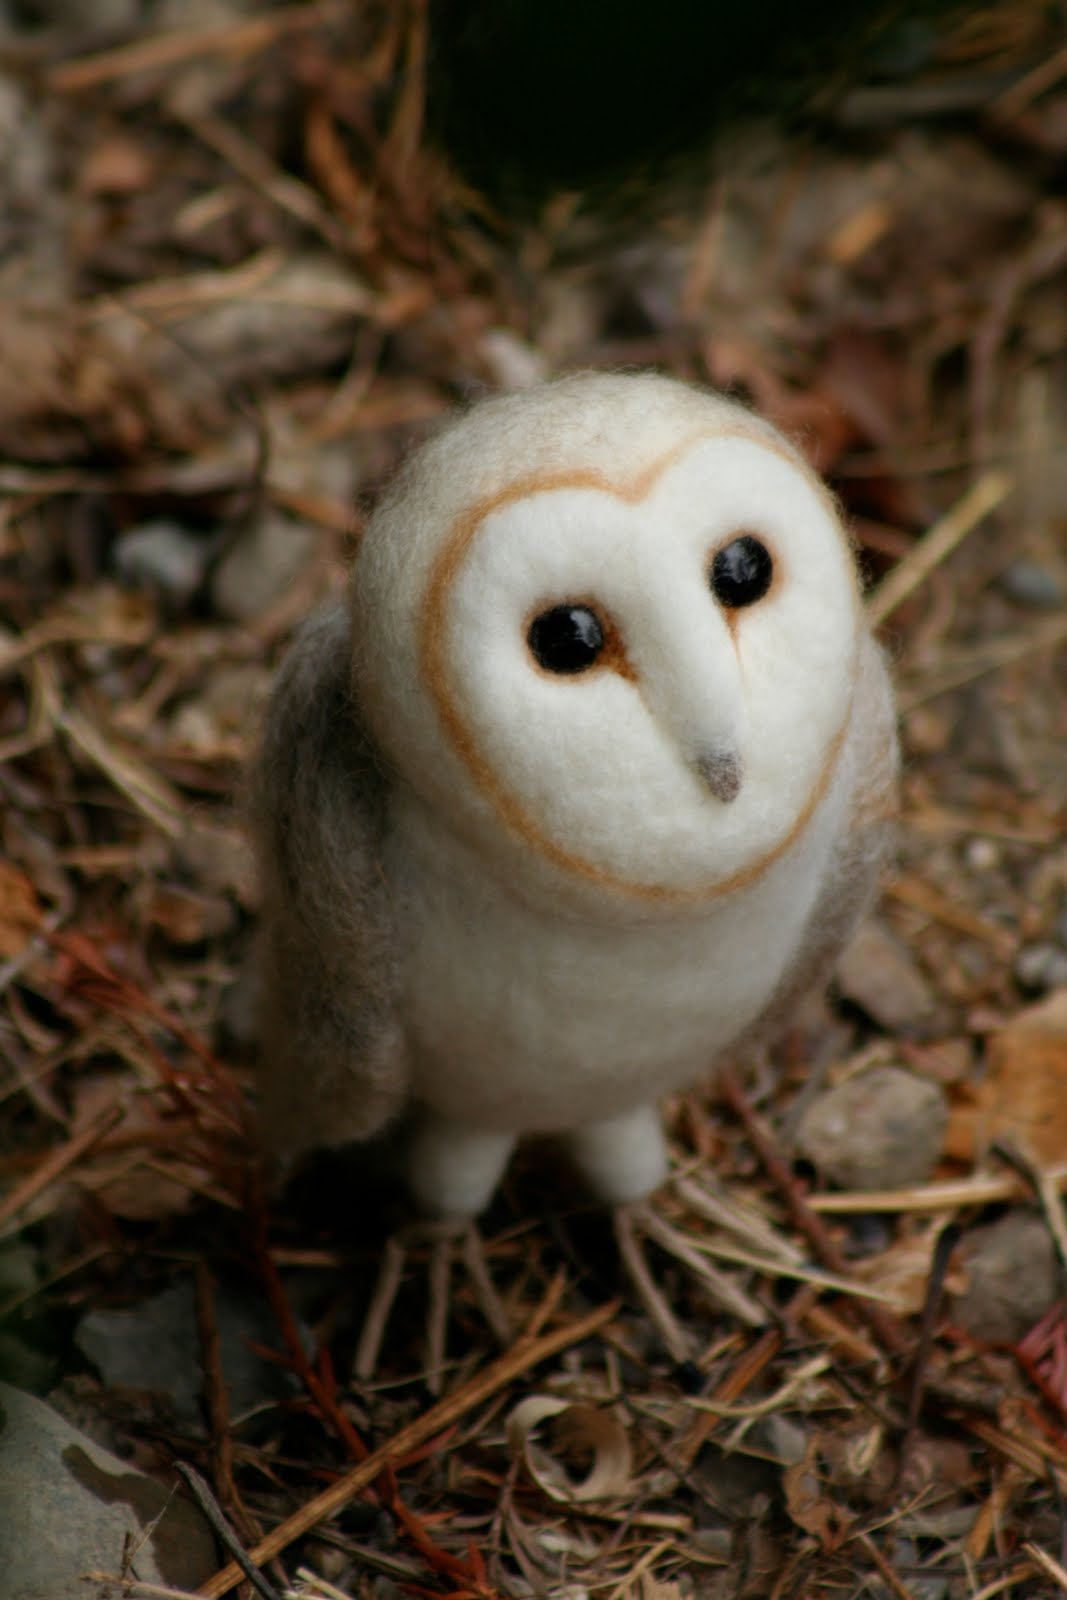 Baby barn owl images - photo#7